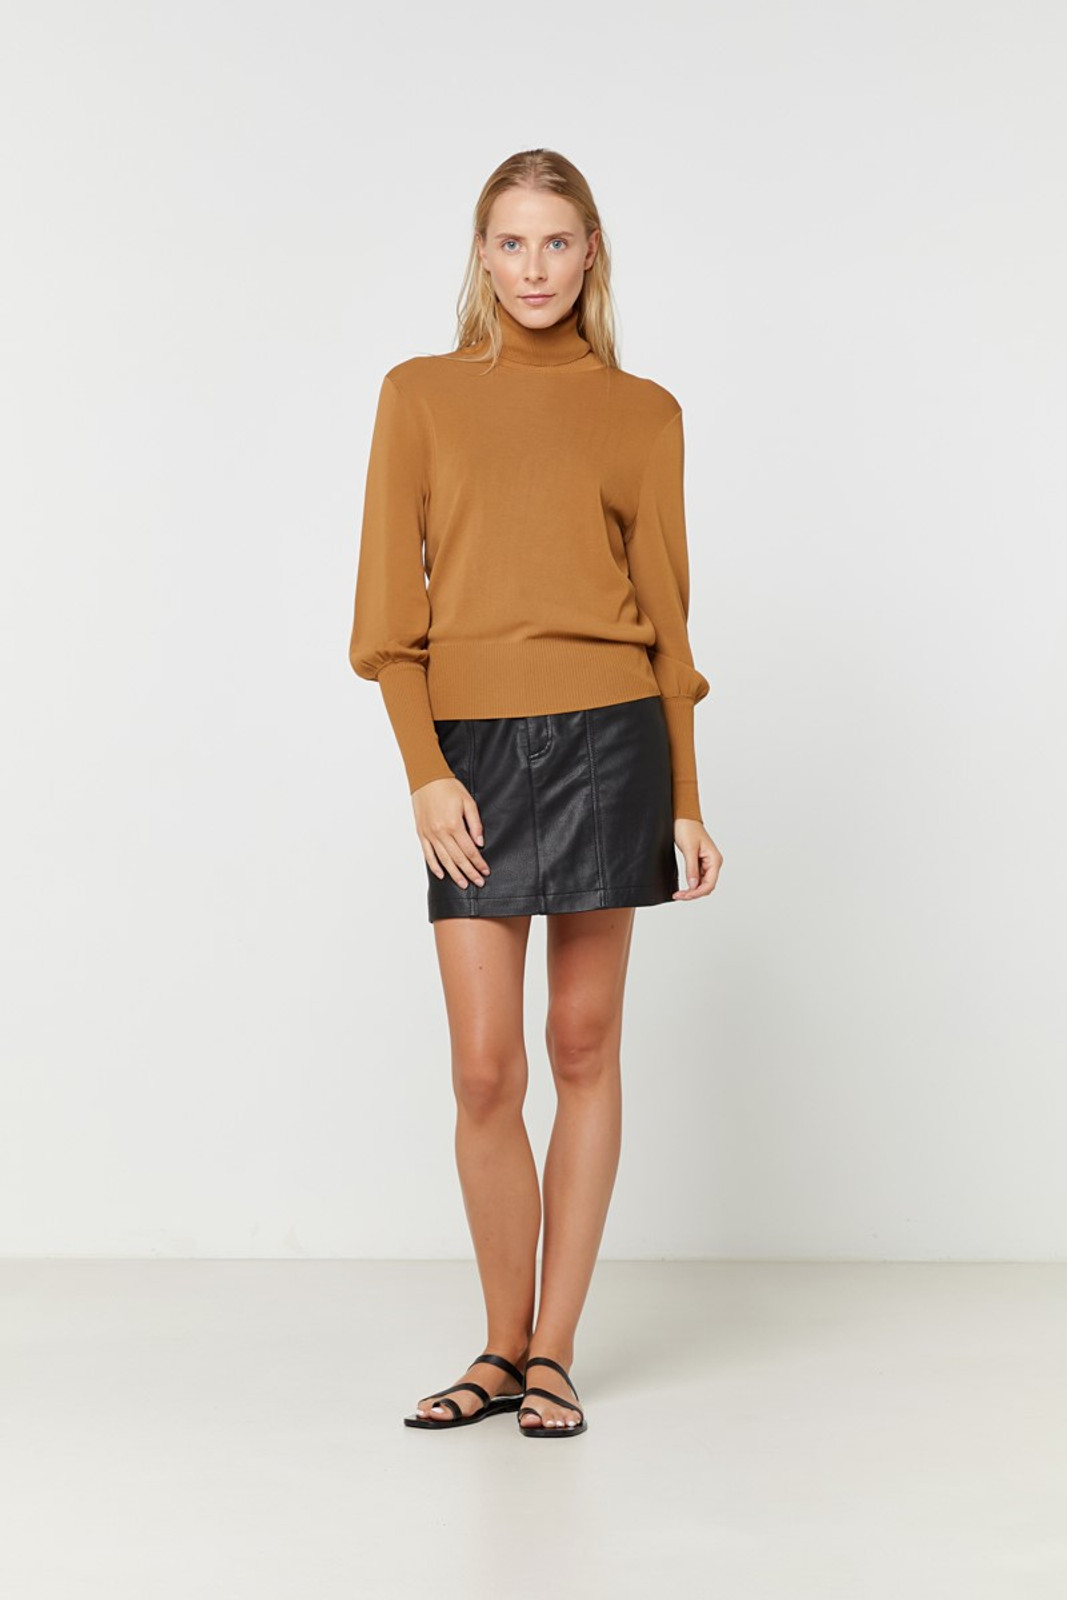 Elka Collective Jacy Knit Yellow  3